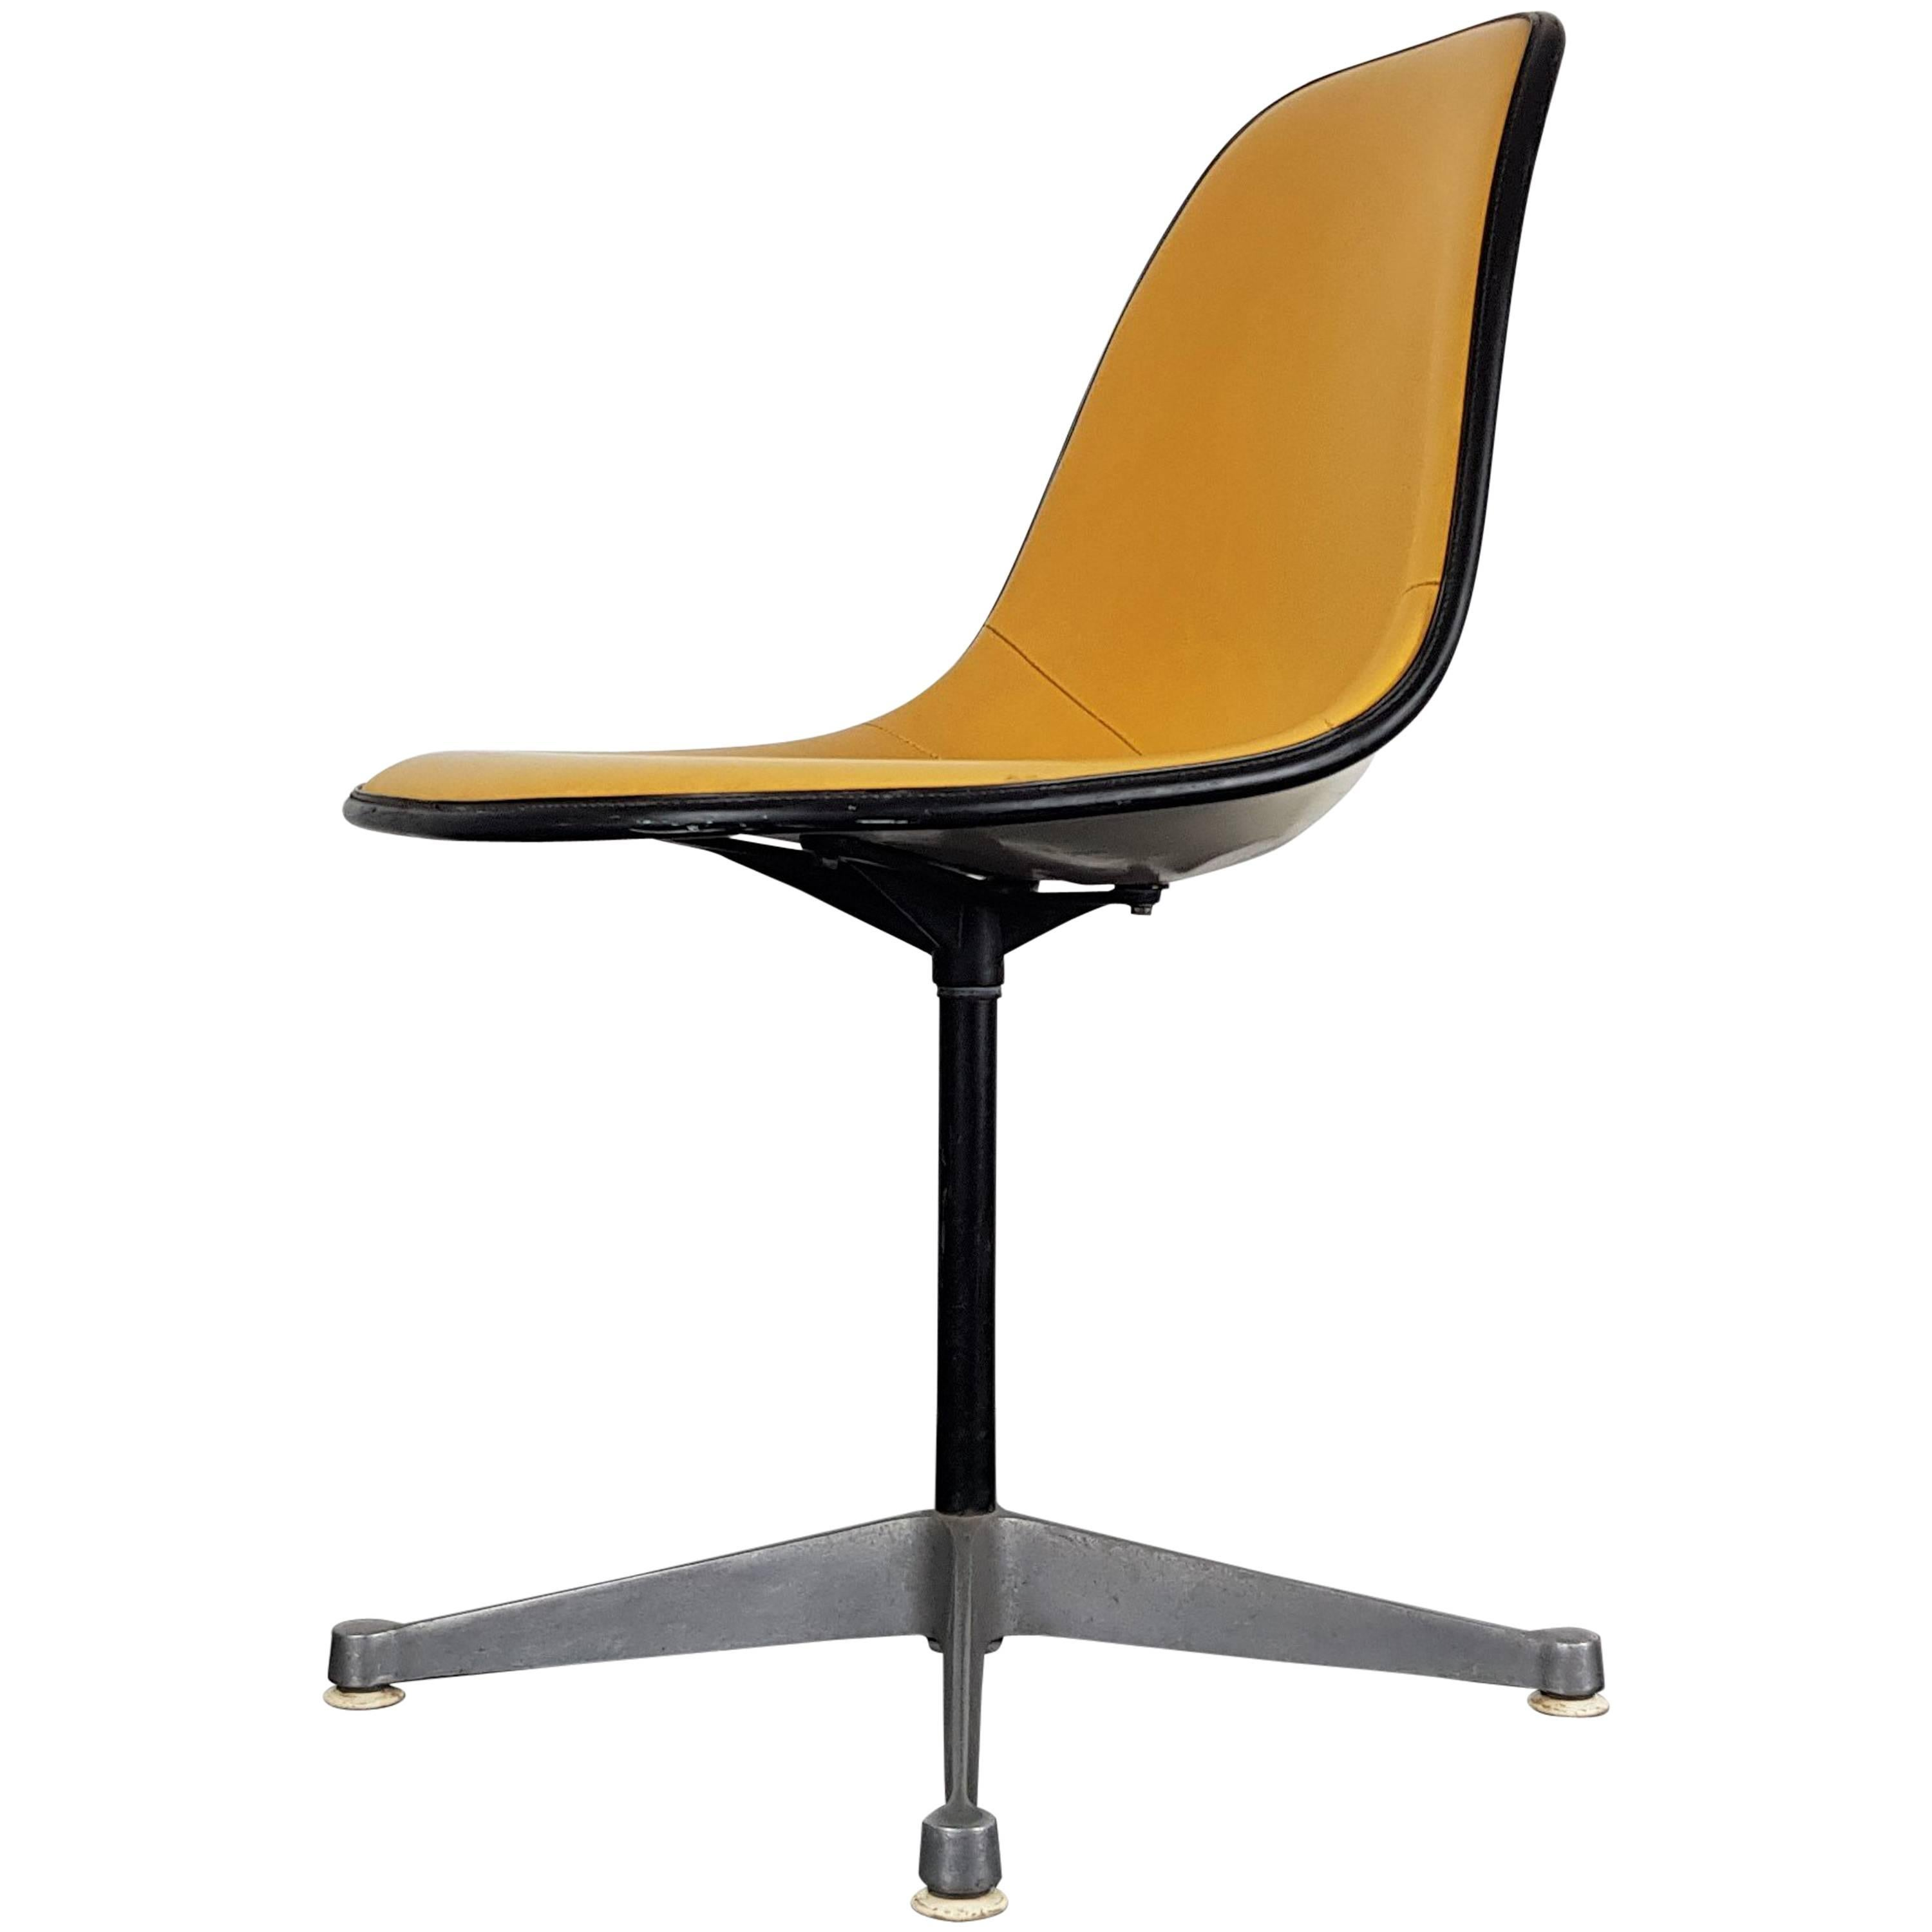 Eames fice Chair Toronto Eames fice Chair With Chrome Task